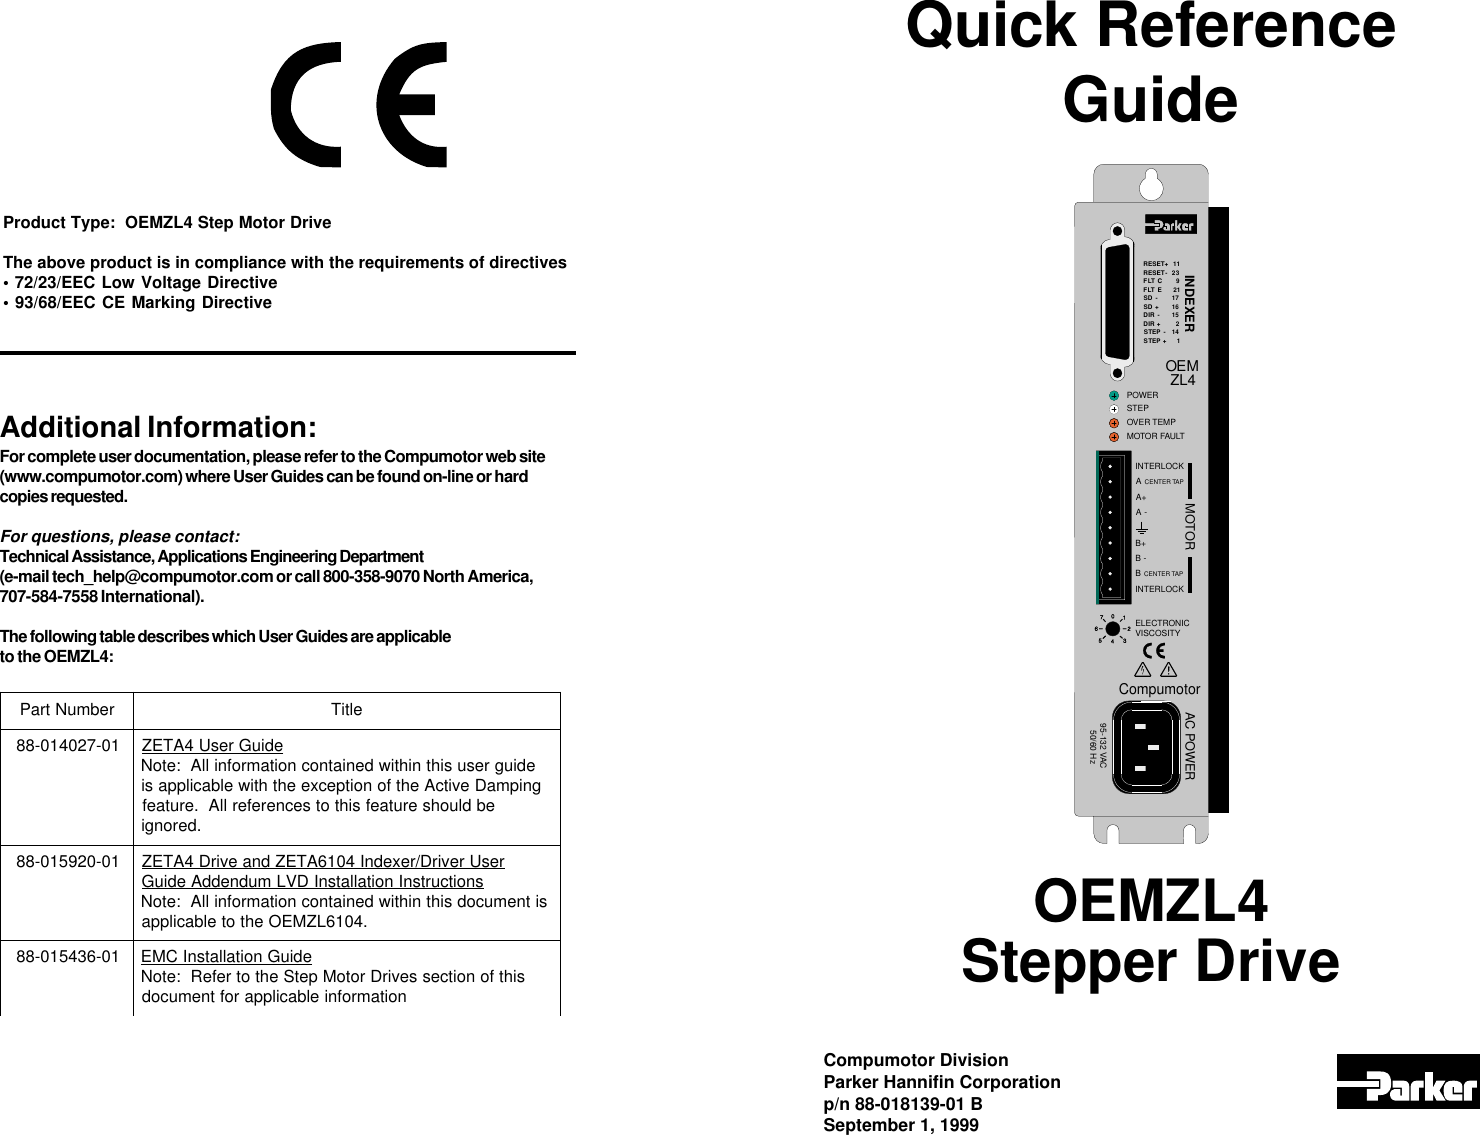 parker hannifin automobile oemzl4 users manual rh usermanual wiki